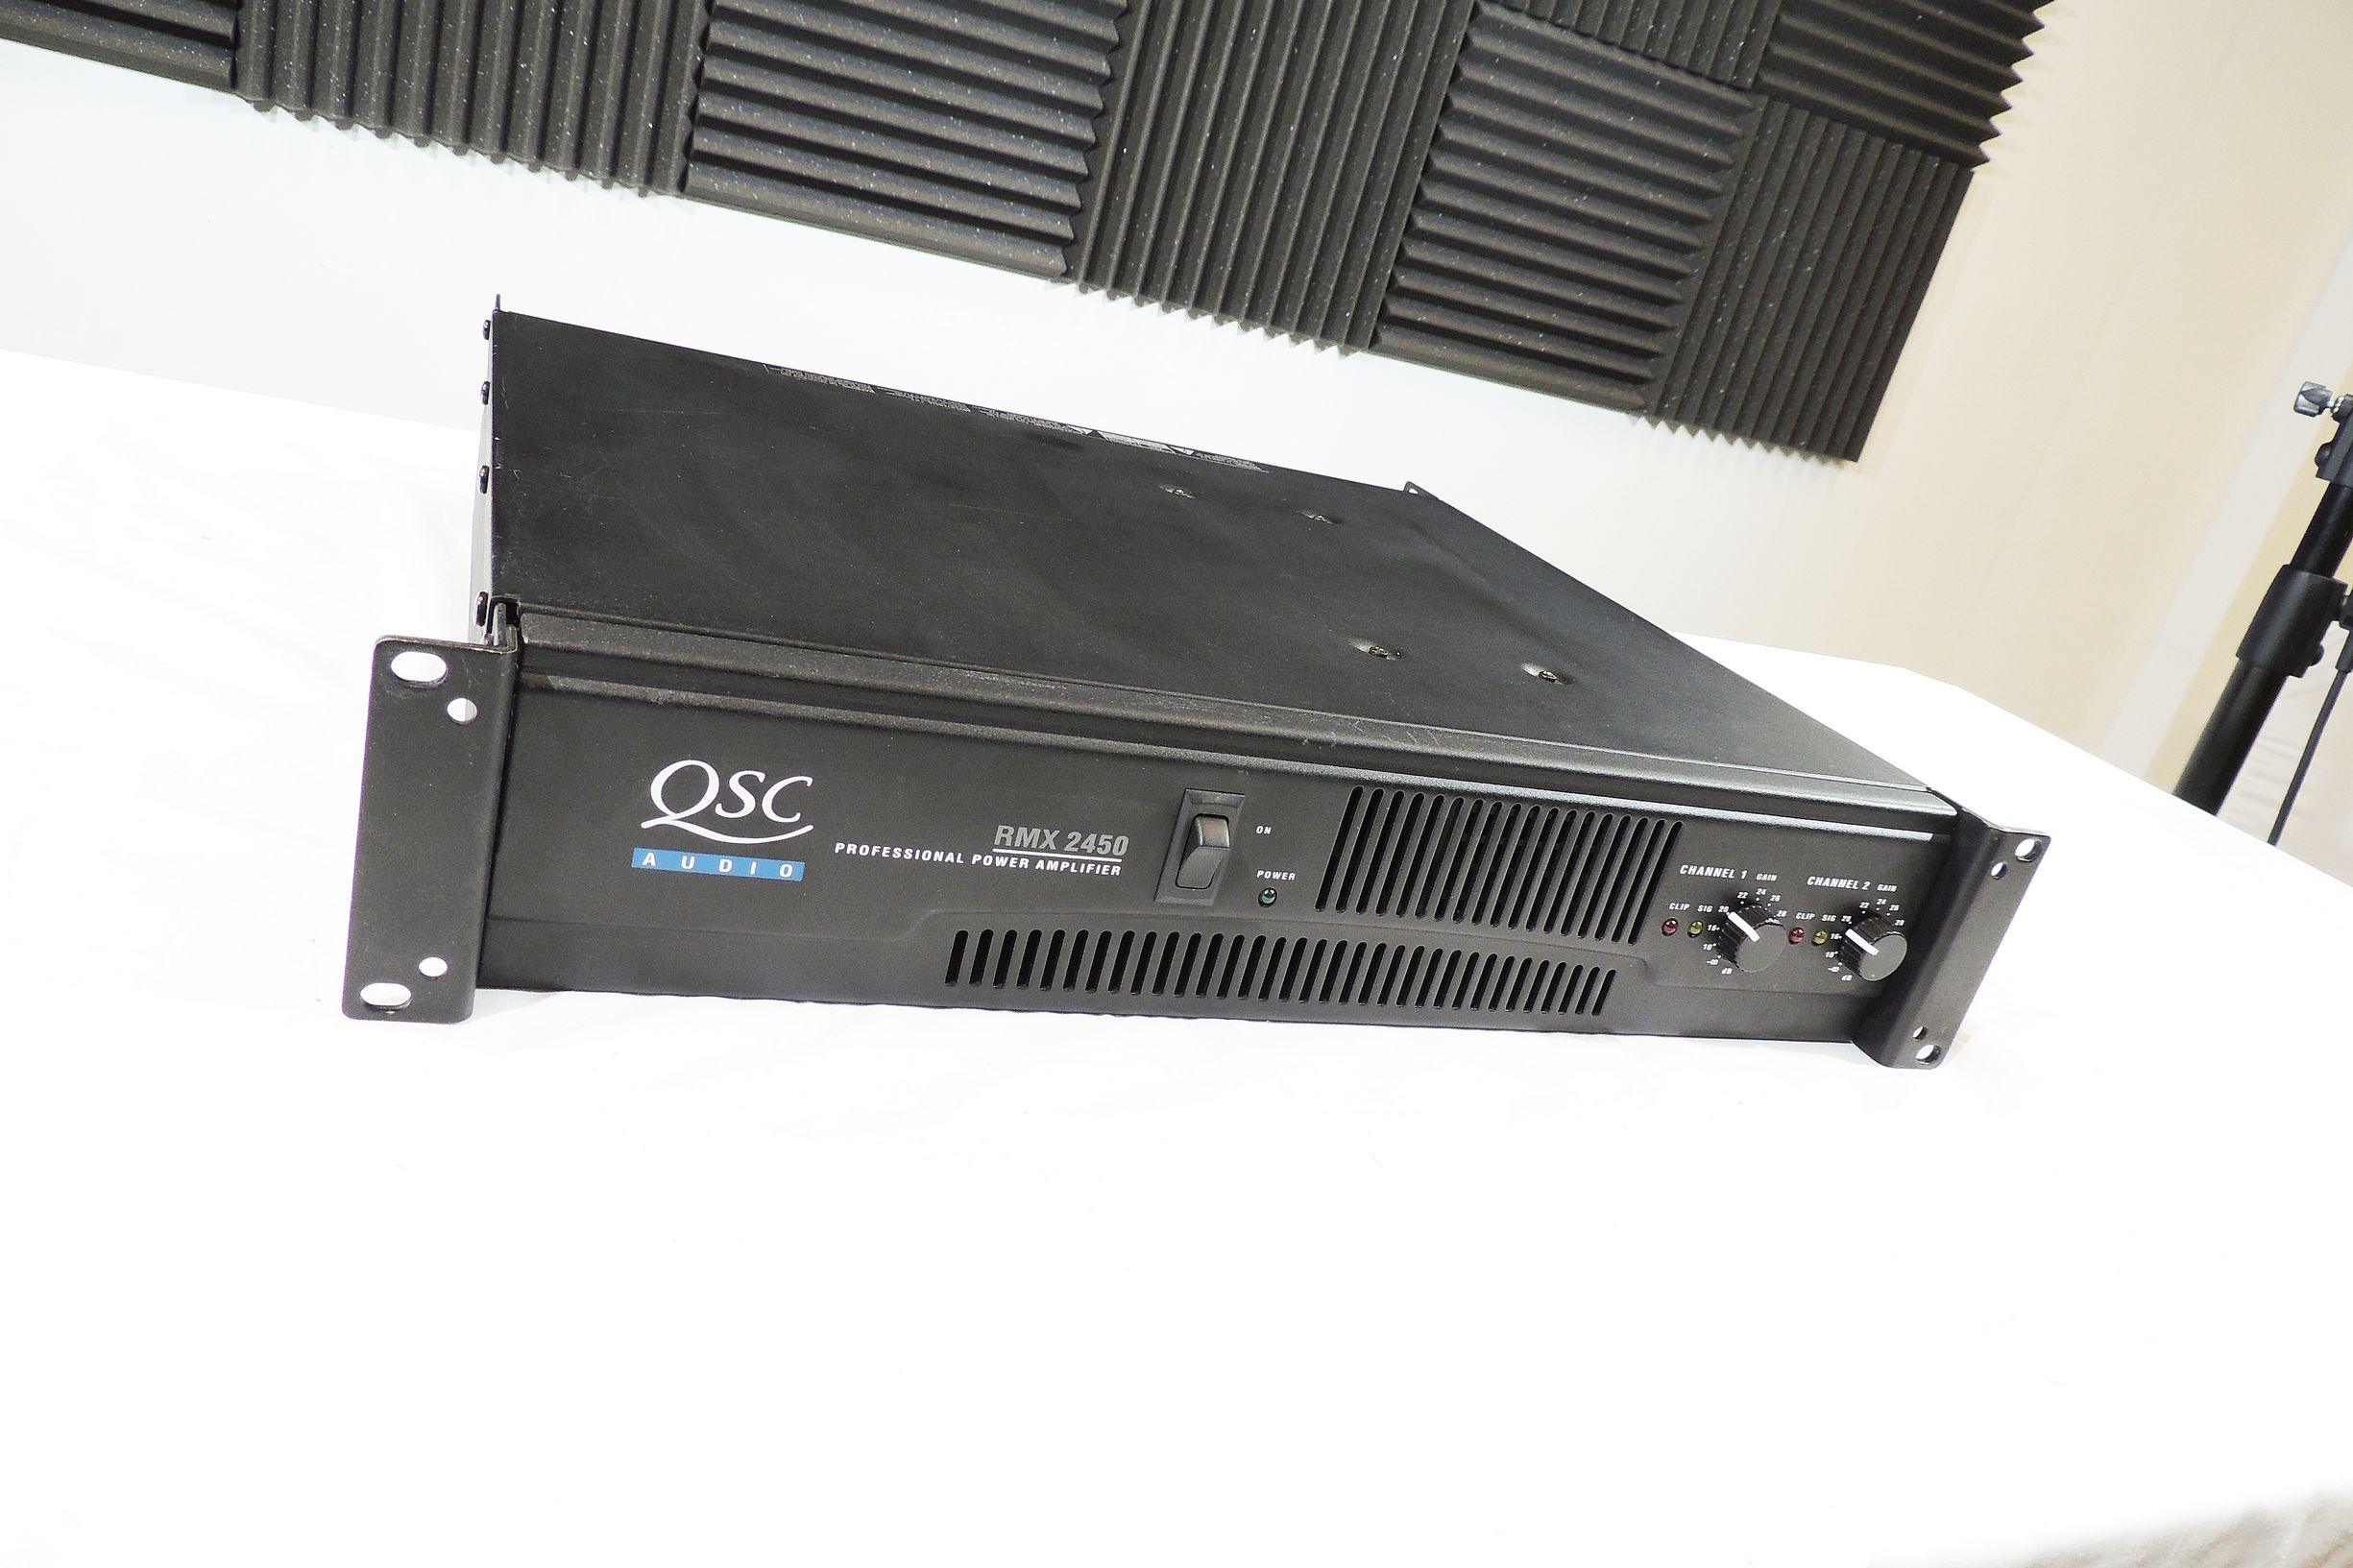 QSC RMX 2450 2-CHANNEL POWER AMP